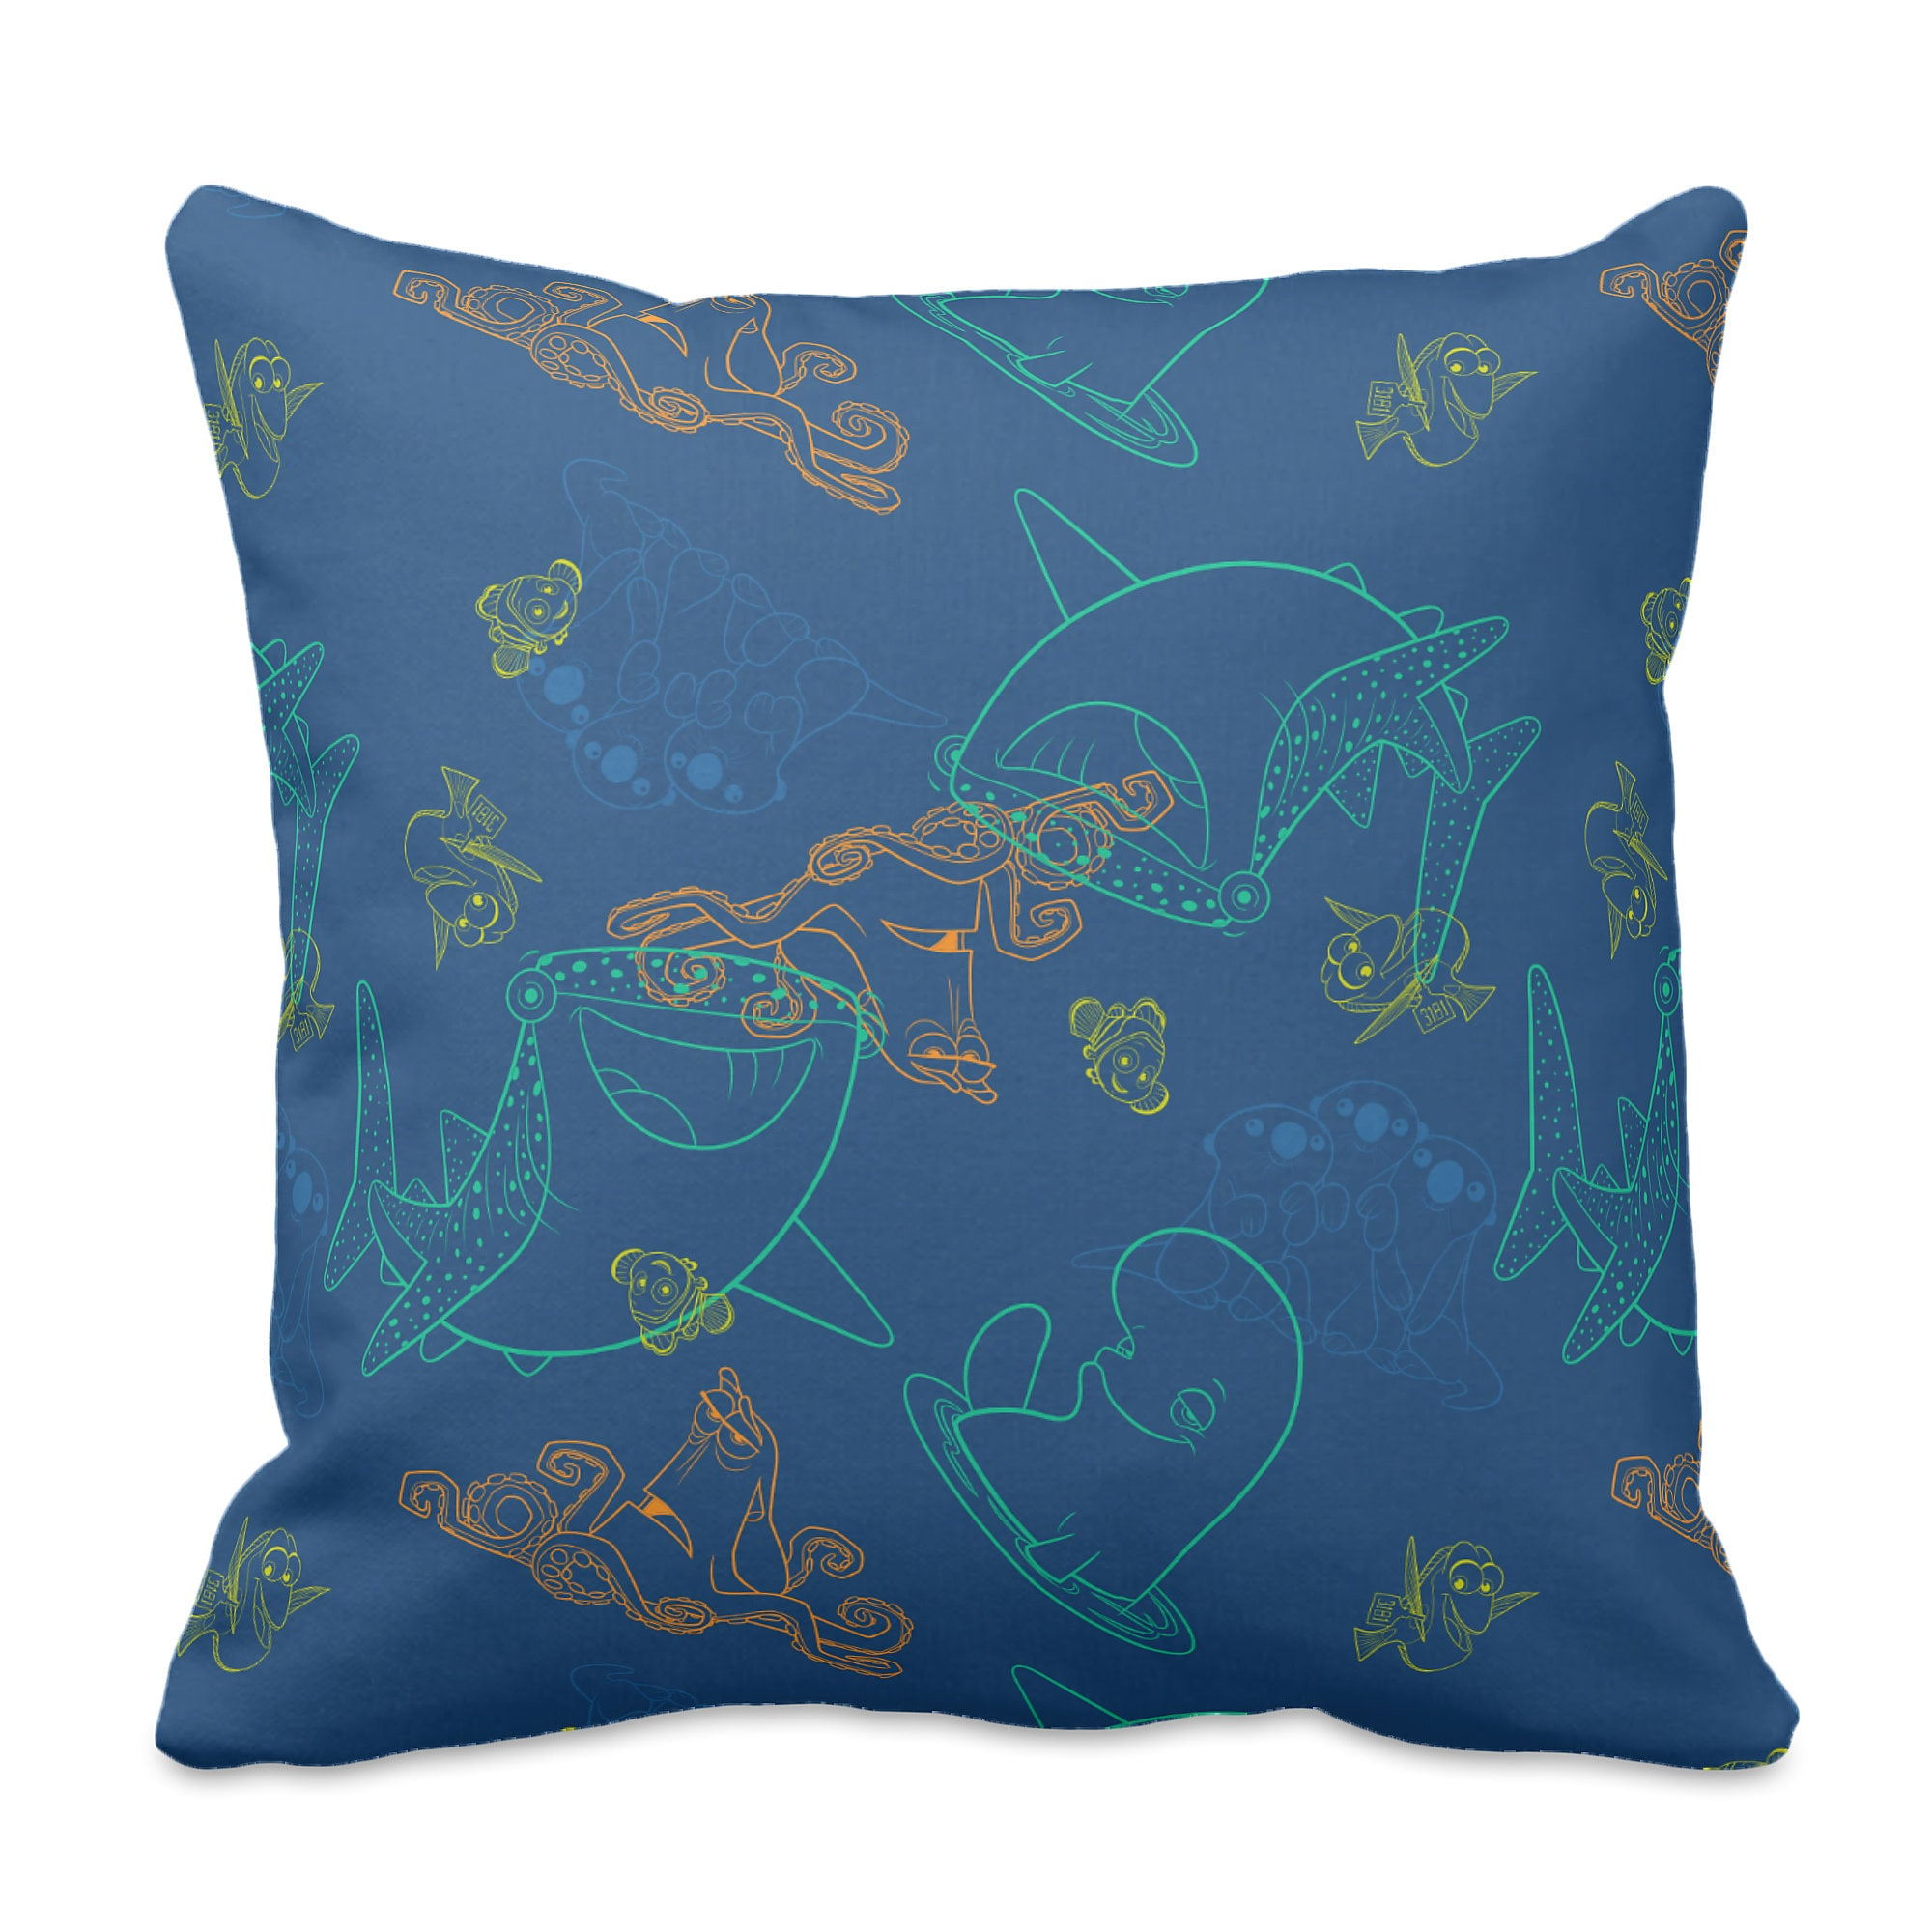 Finding Dory ''Sketch'' Pillow - Customizable